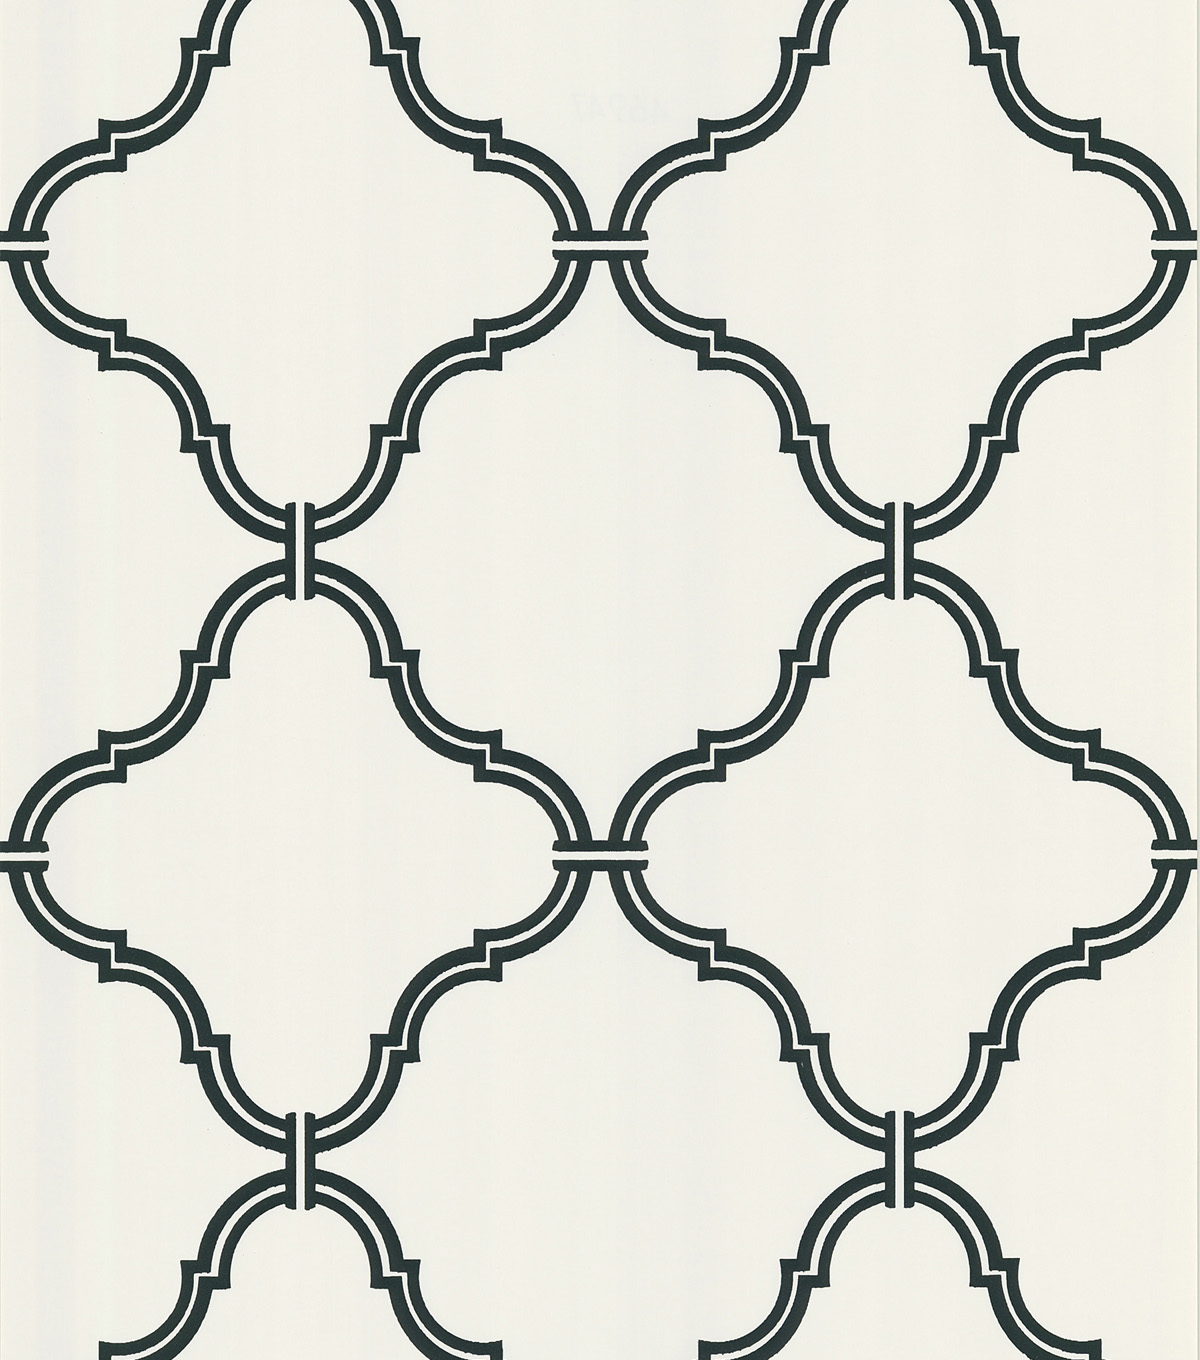 Estate White Moroccan Grate Wallpaper Sample